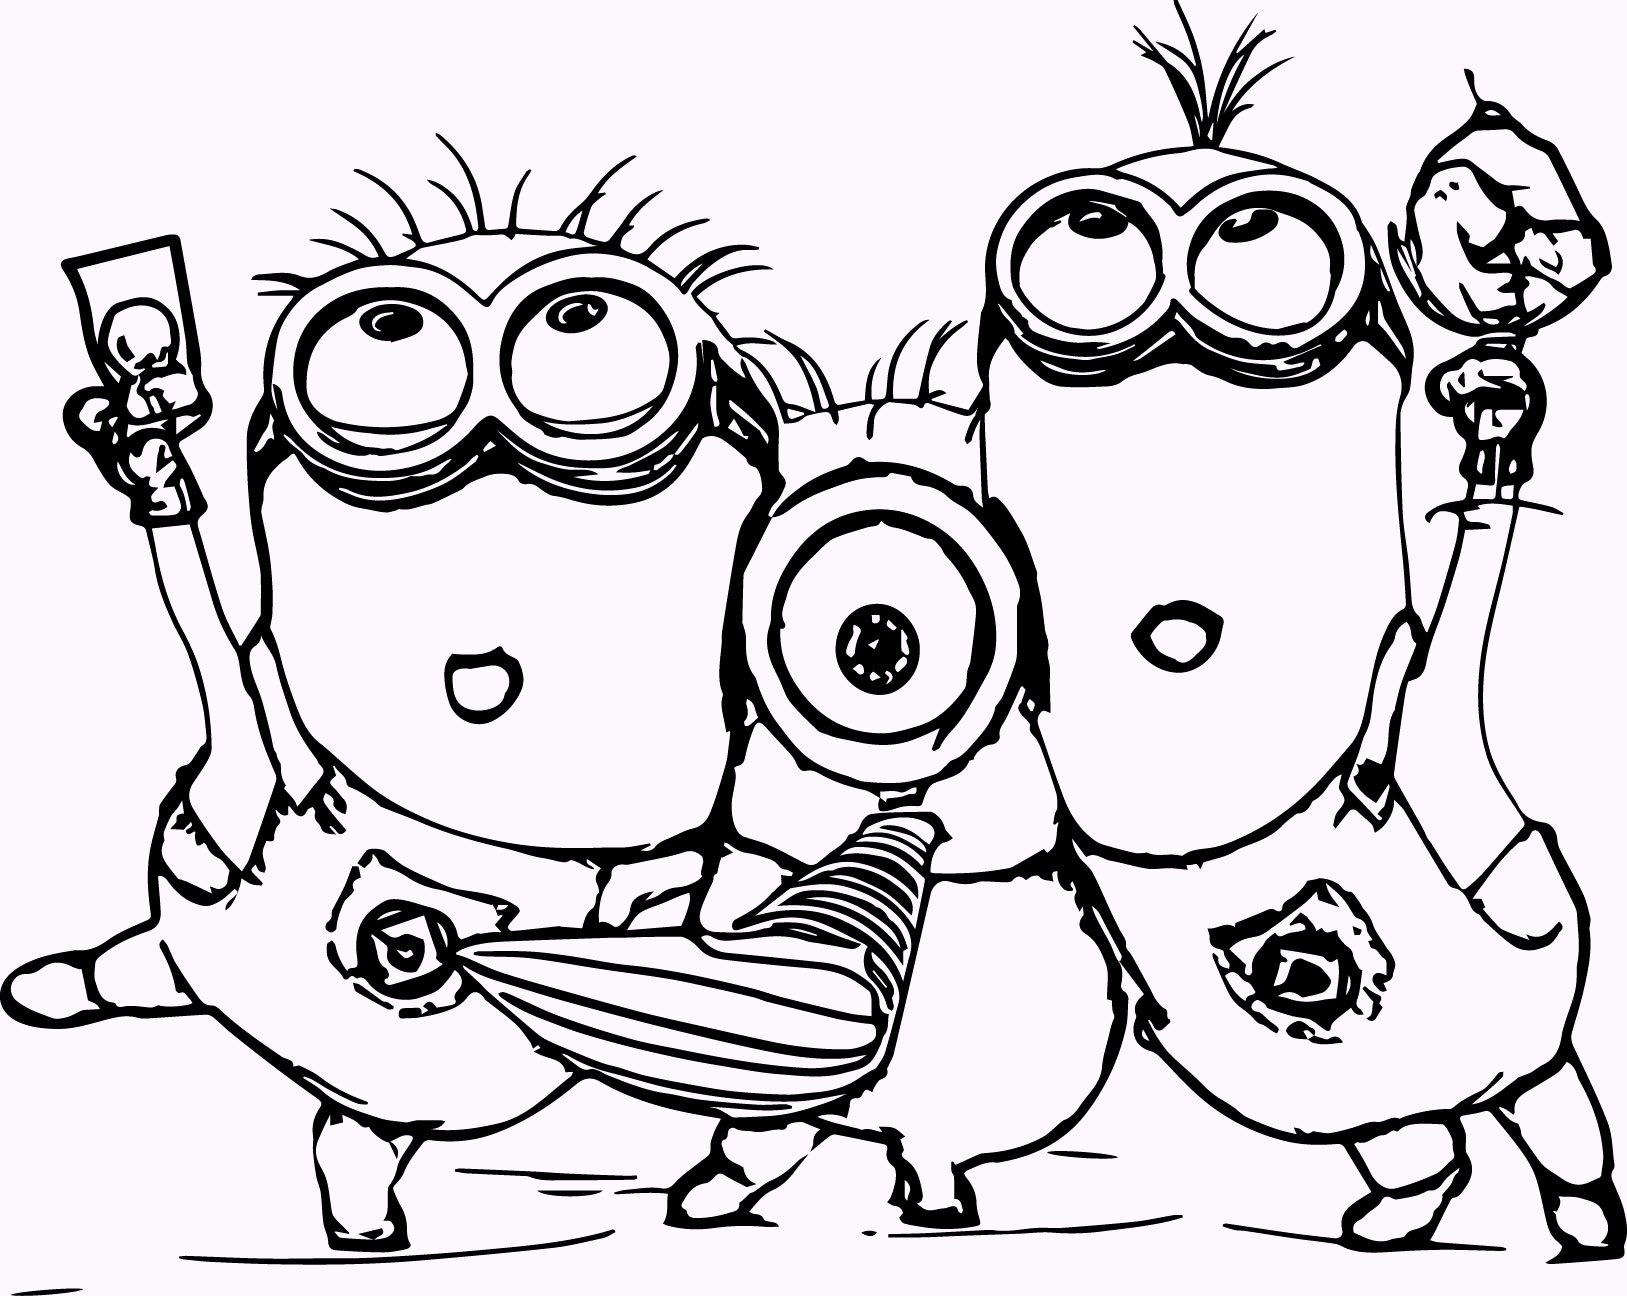 11-cute-minion-coloring-pages